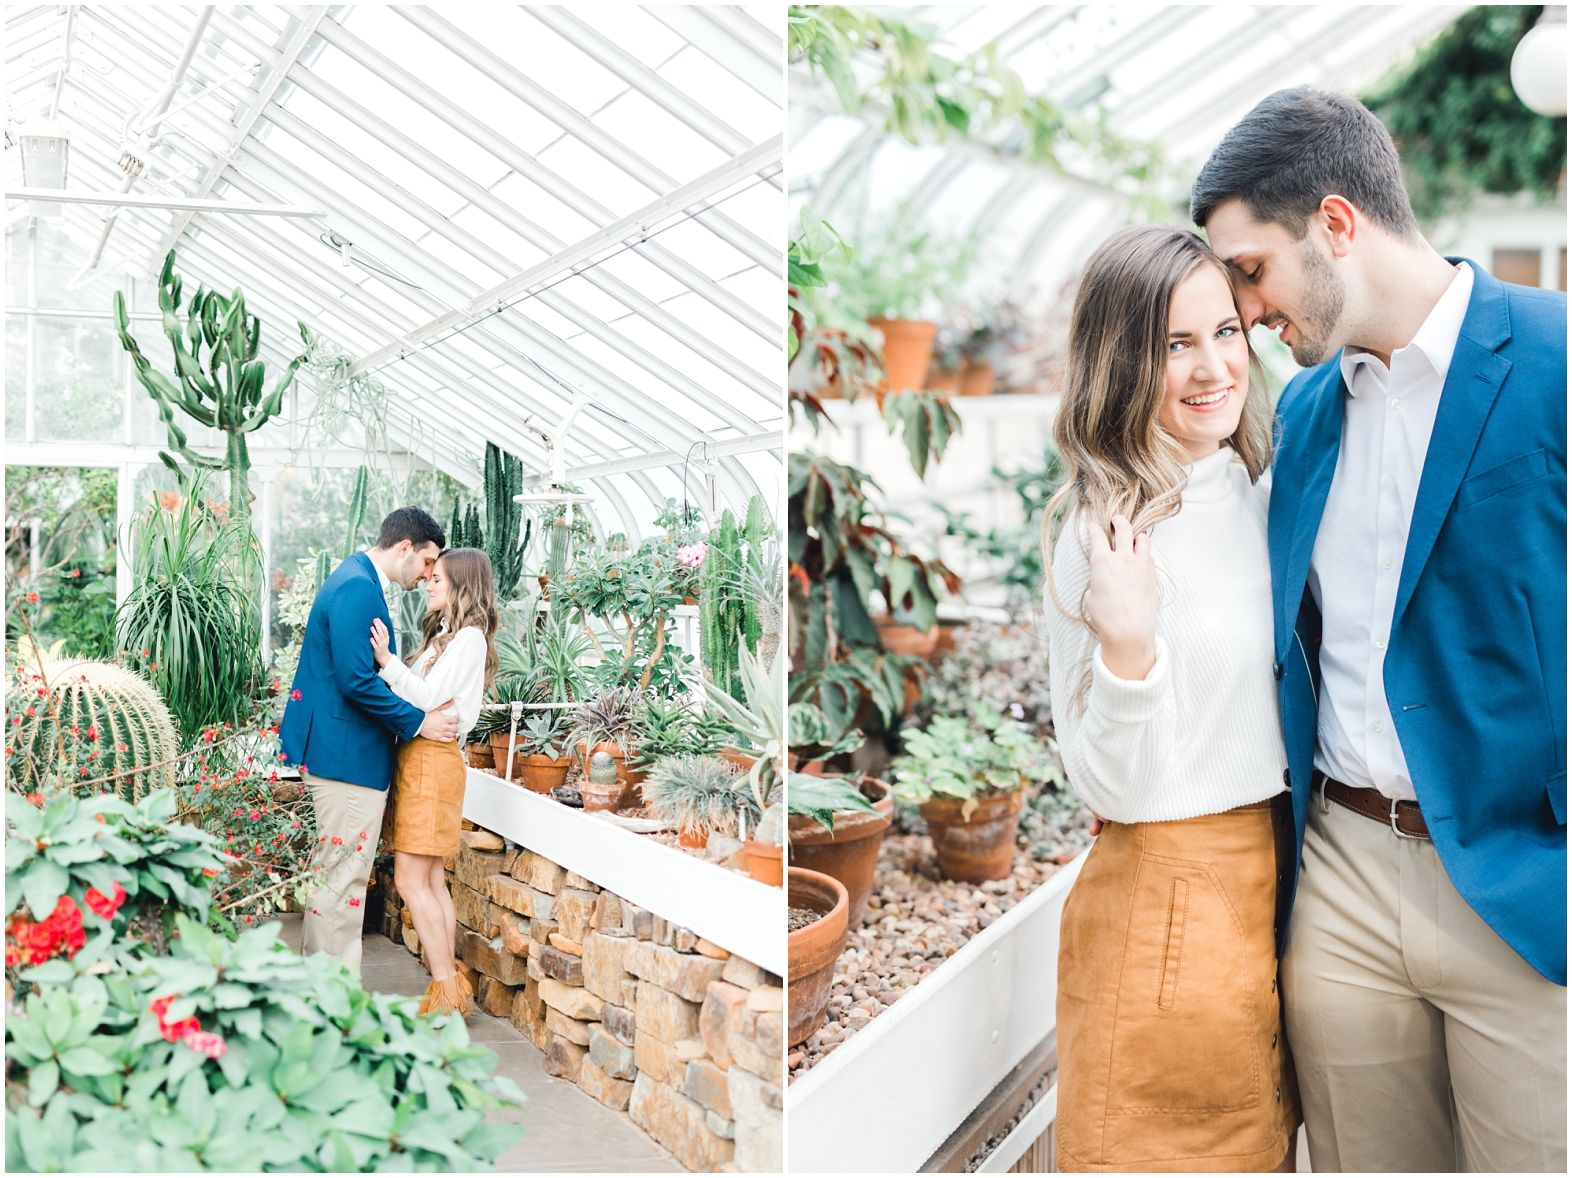 Pin On Couples And Engagement Sessions